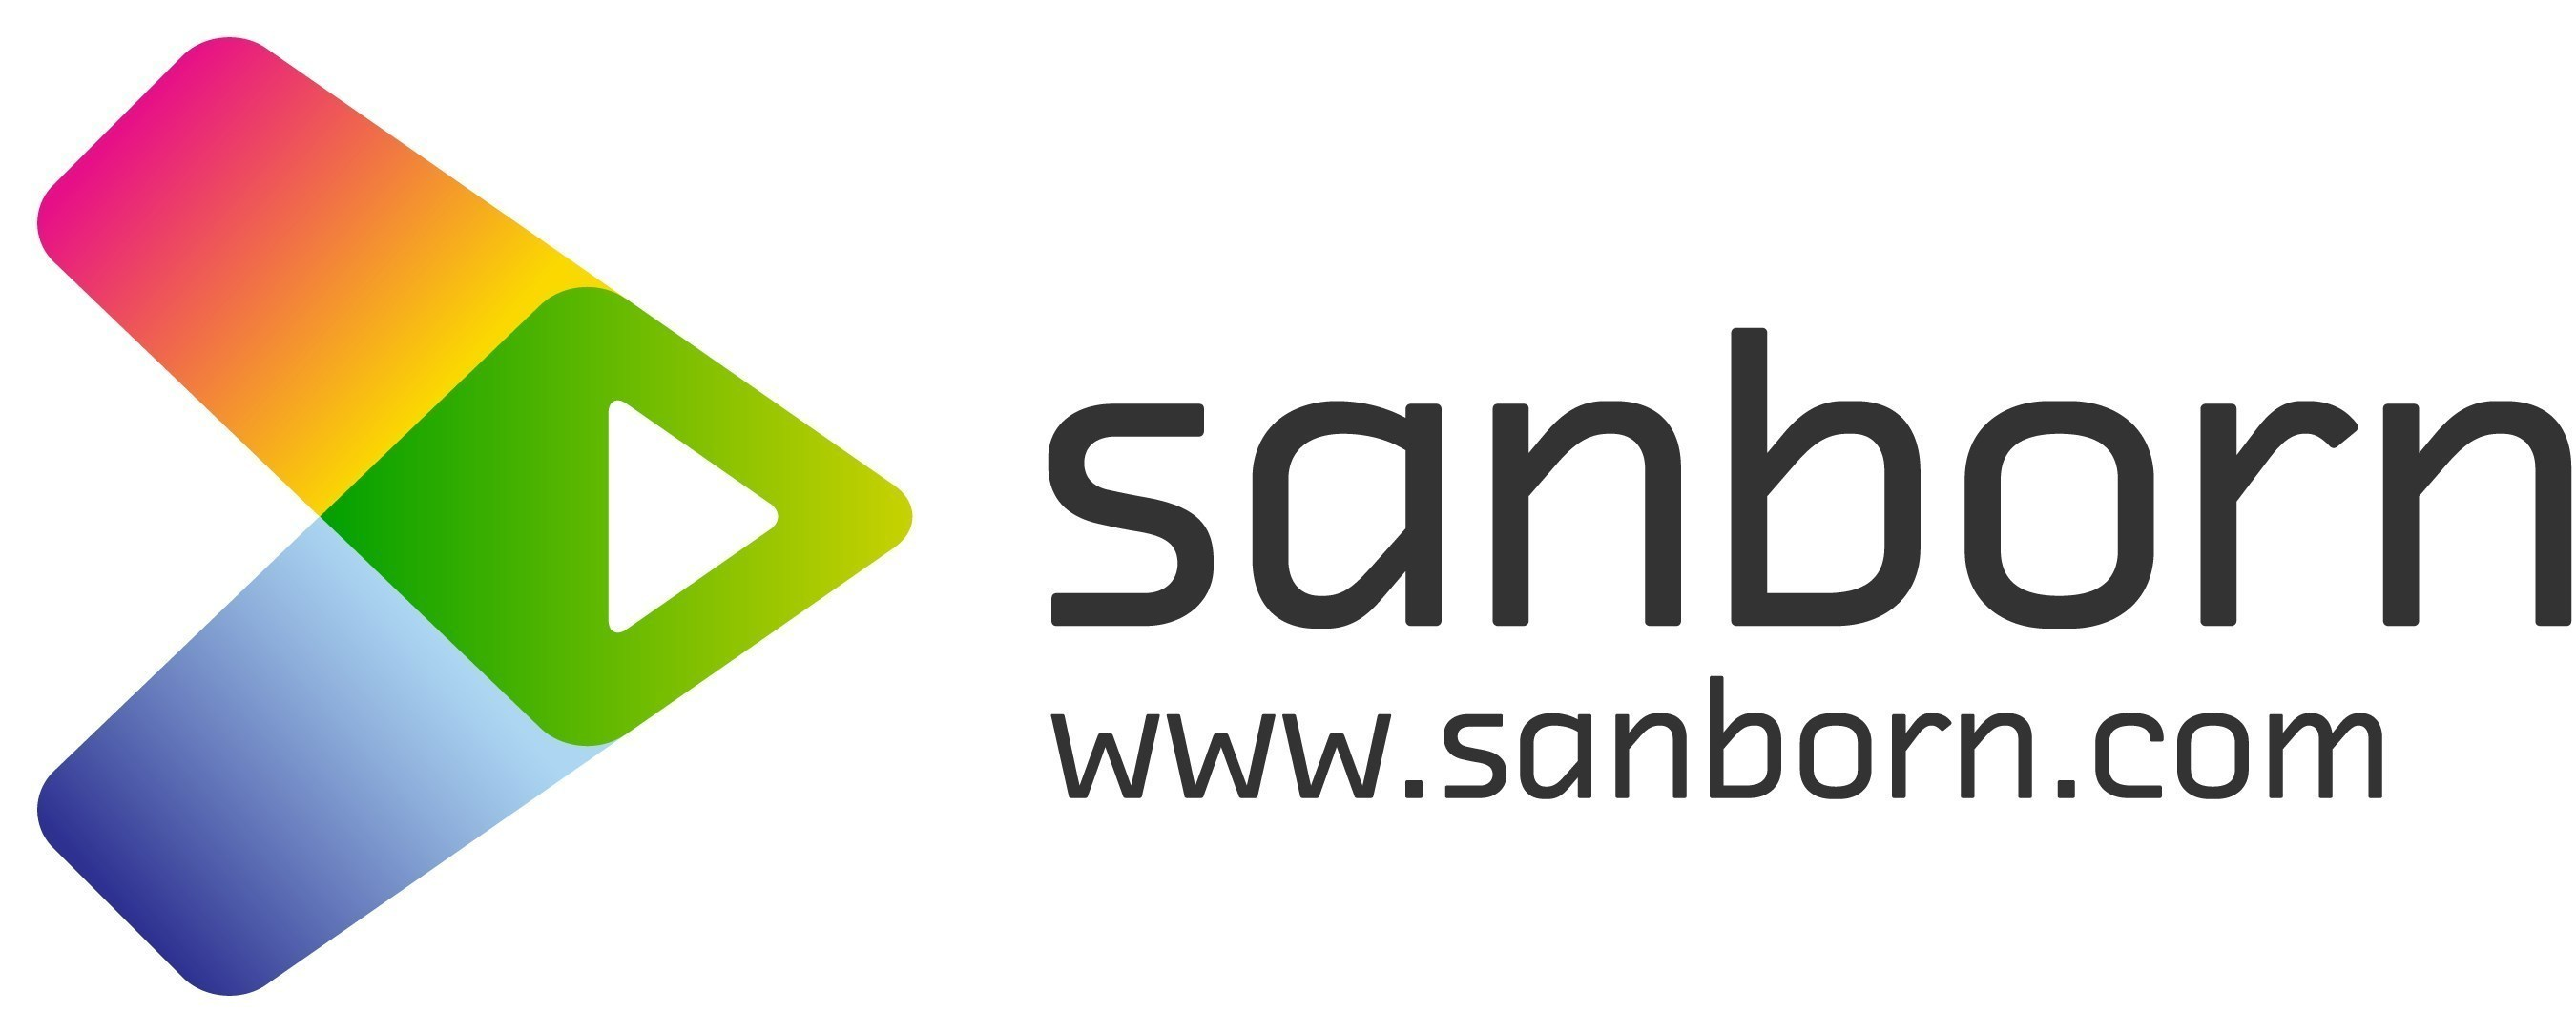 Geospatial and Aerial Mapping Solutions Nationwide, The Sanborn Map Company, Colorado Springs, Colo.